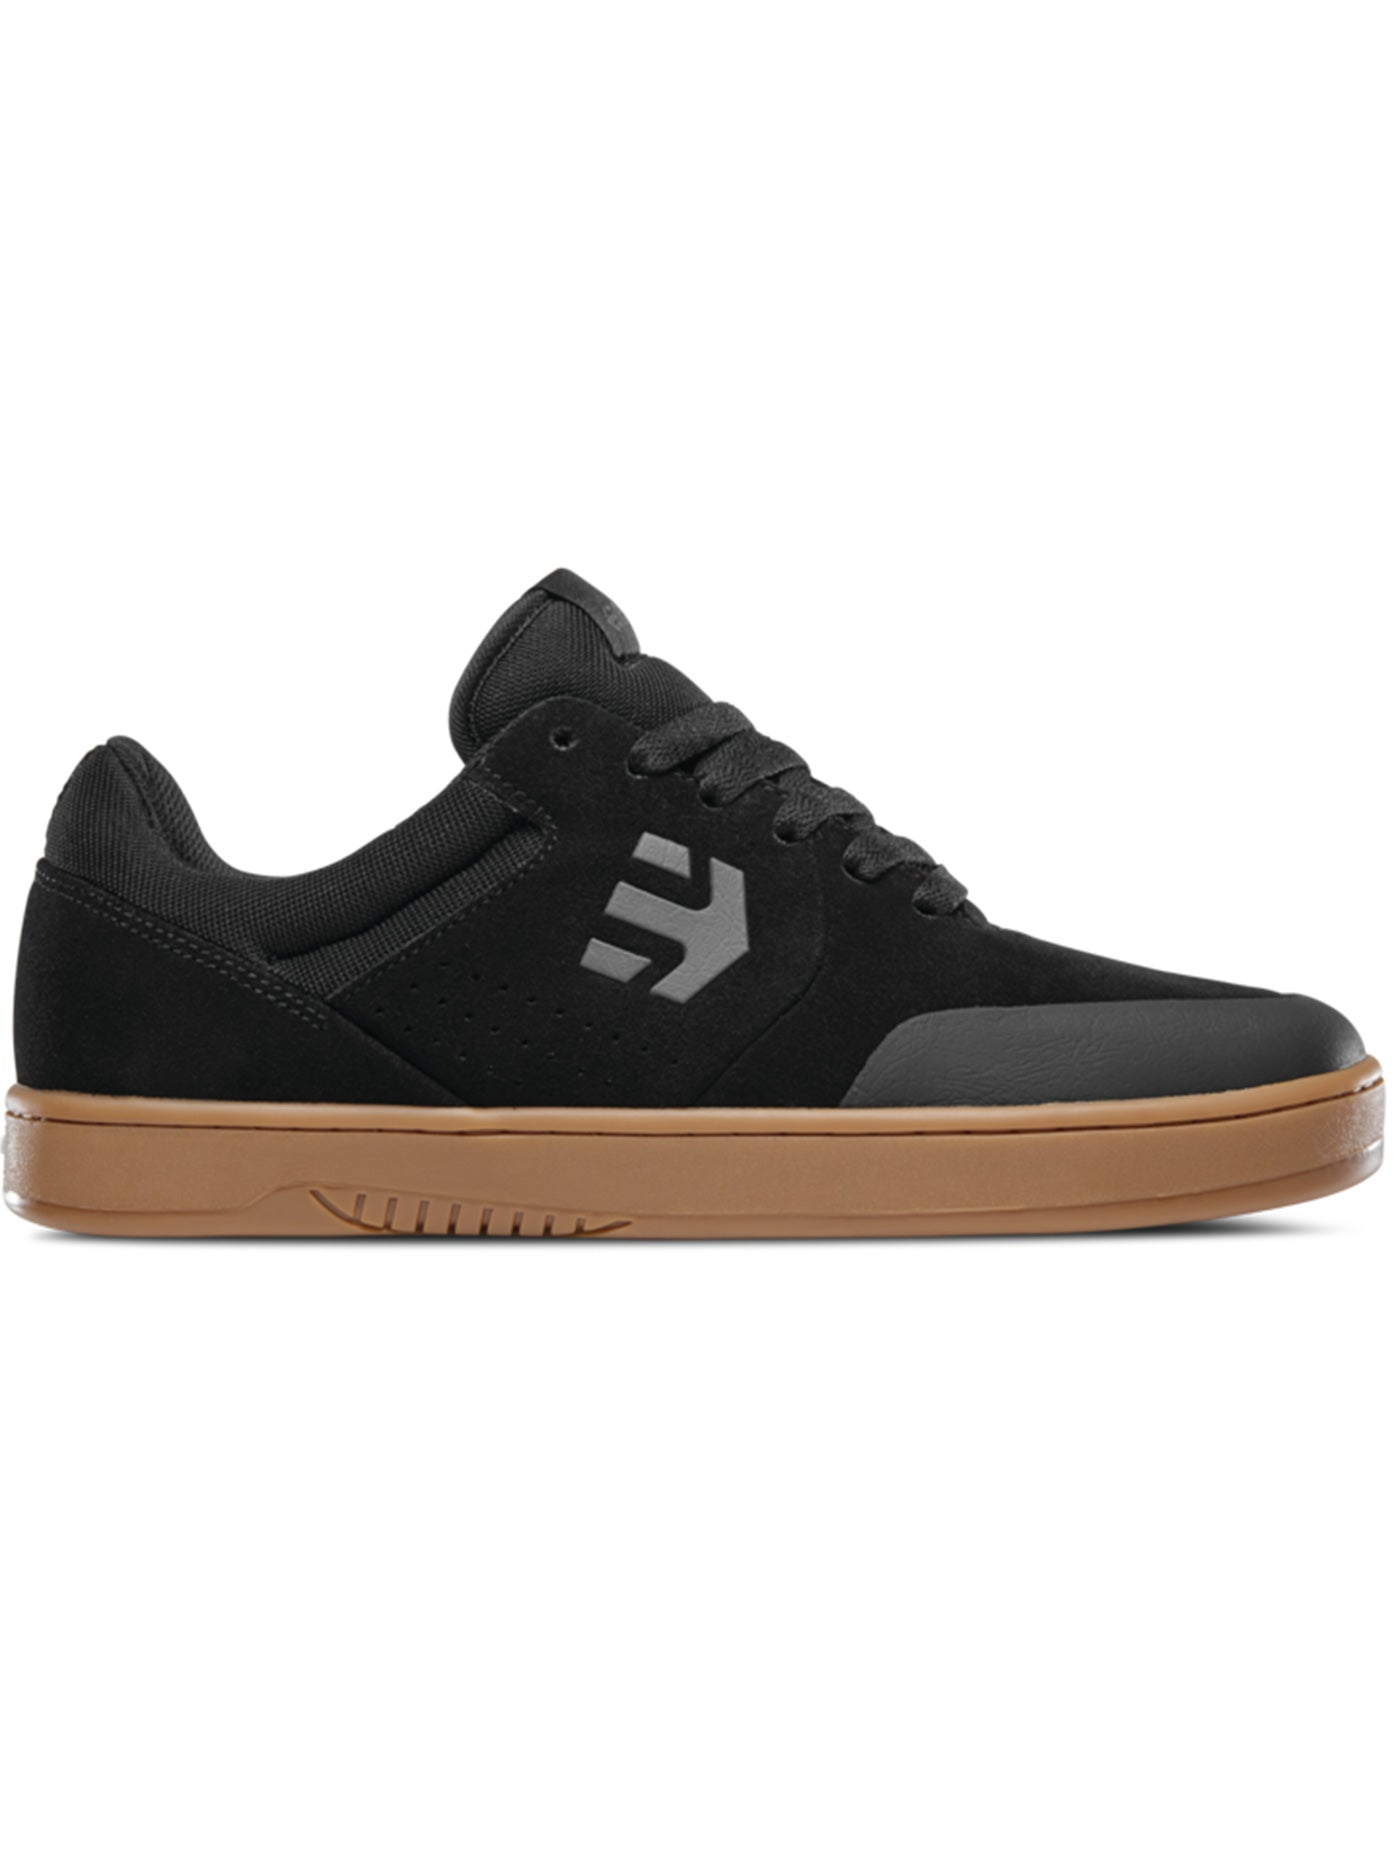 BLACK/DARK GREY/GUM (566)